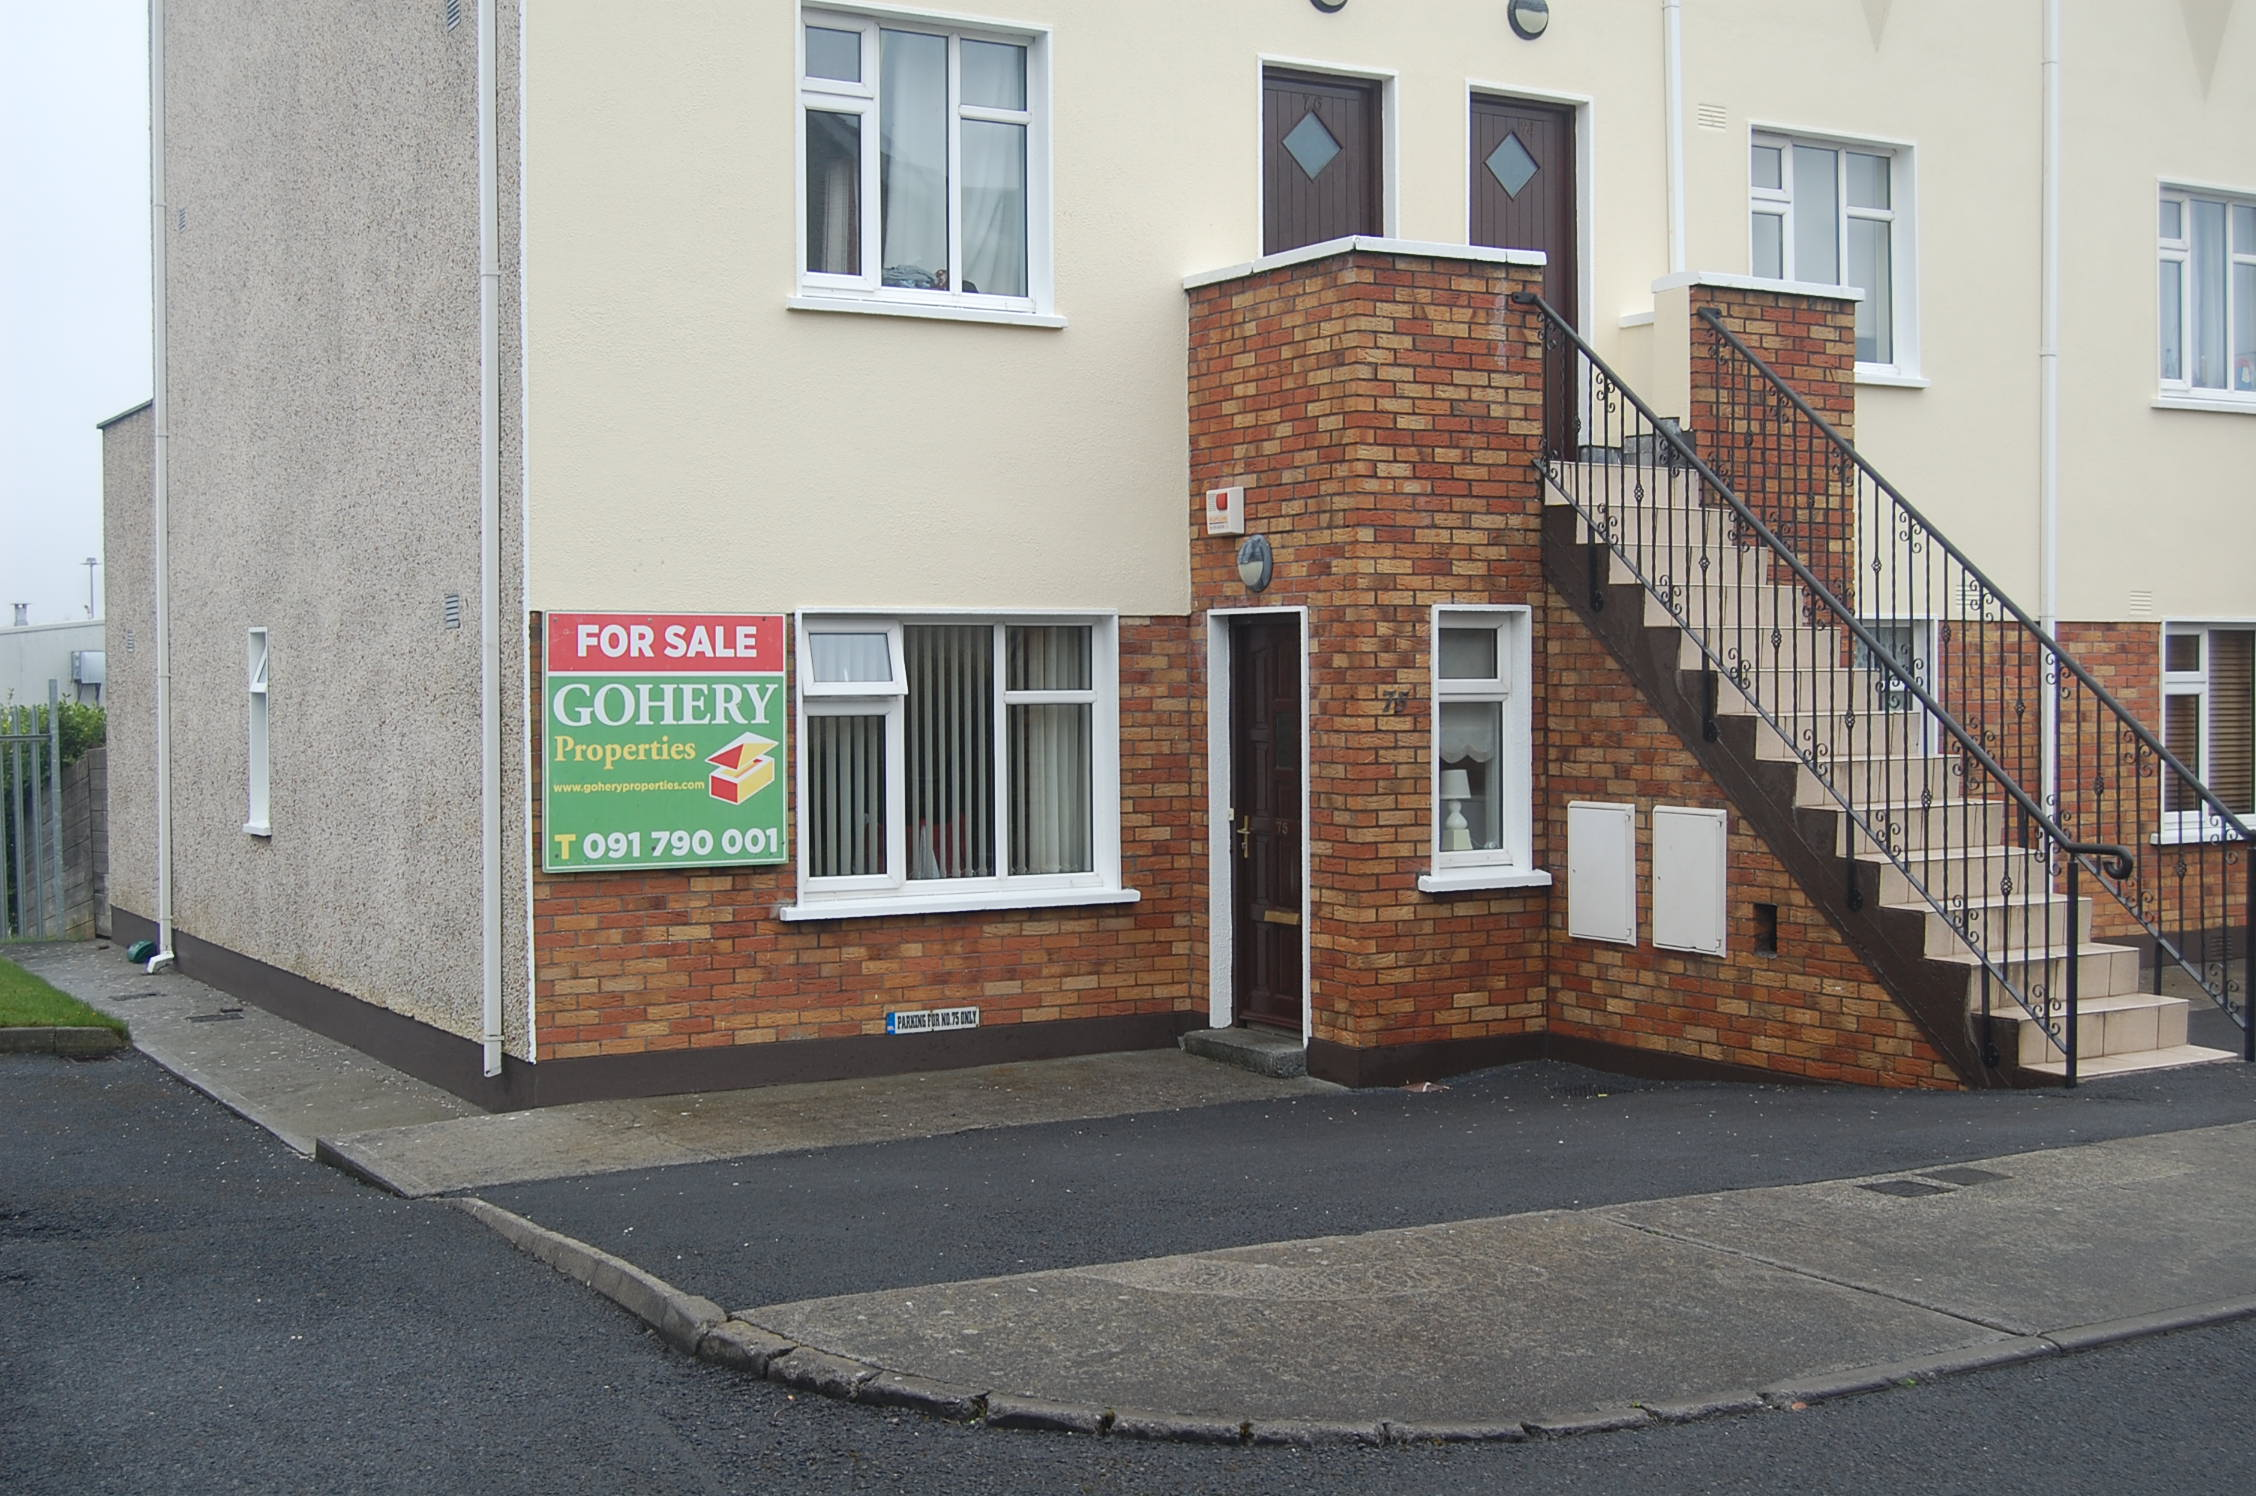 75 Cill Ard, Bohermore, Co. Galway